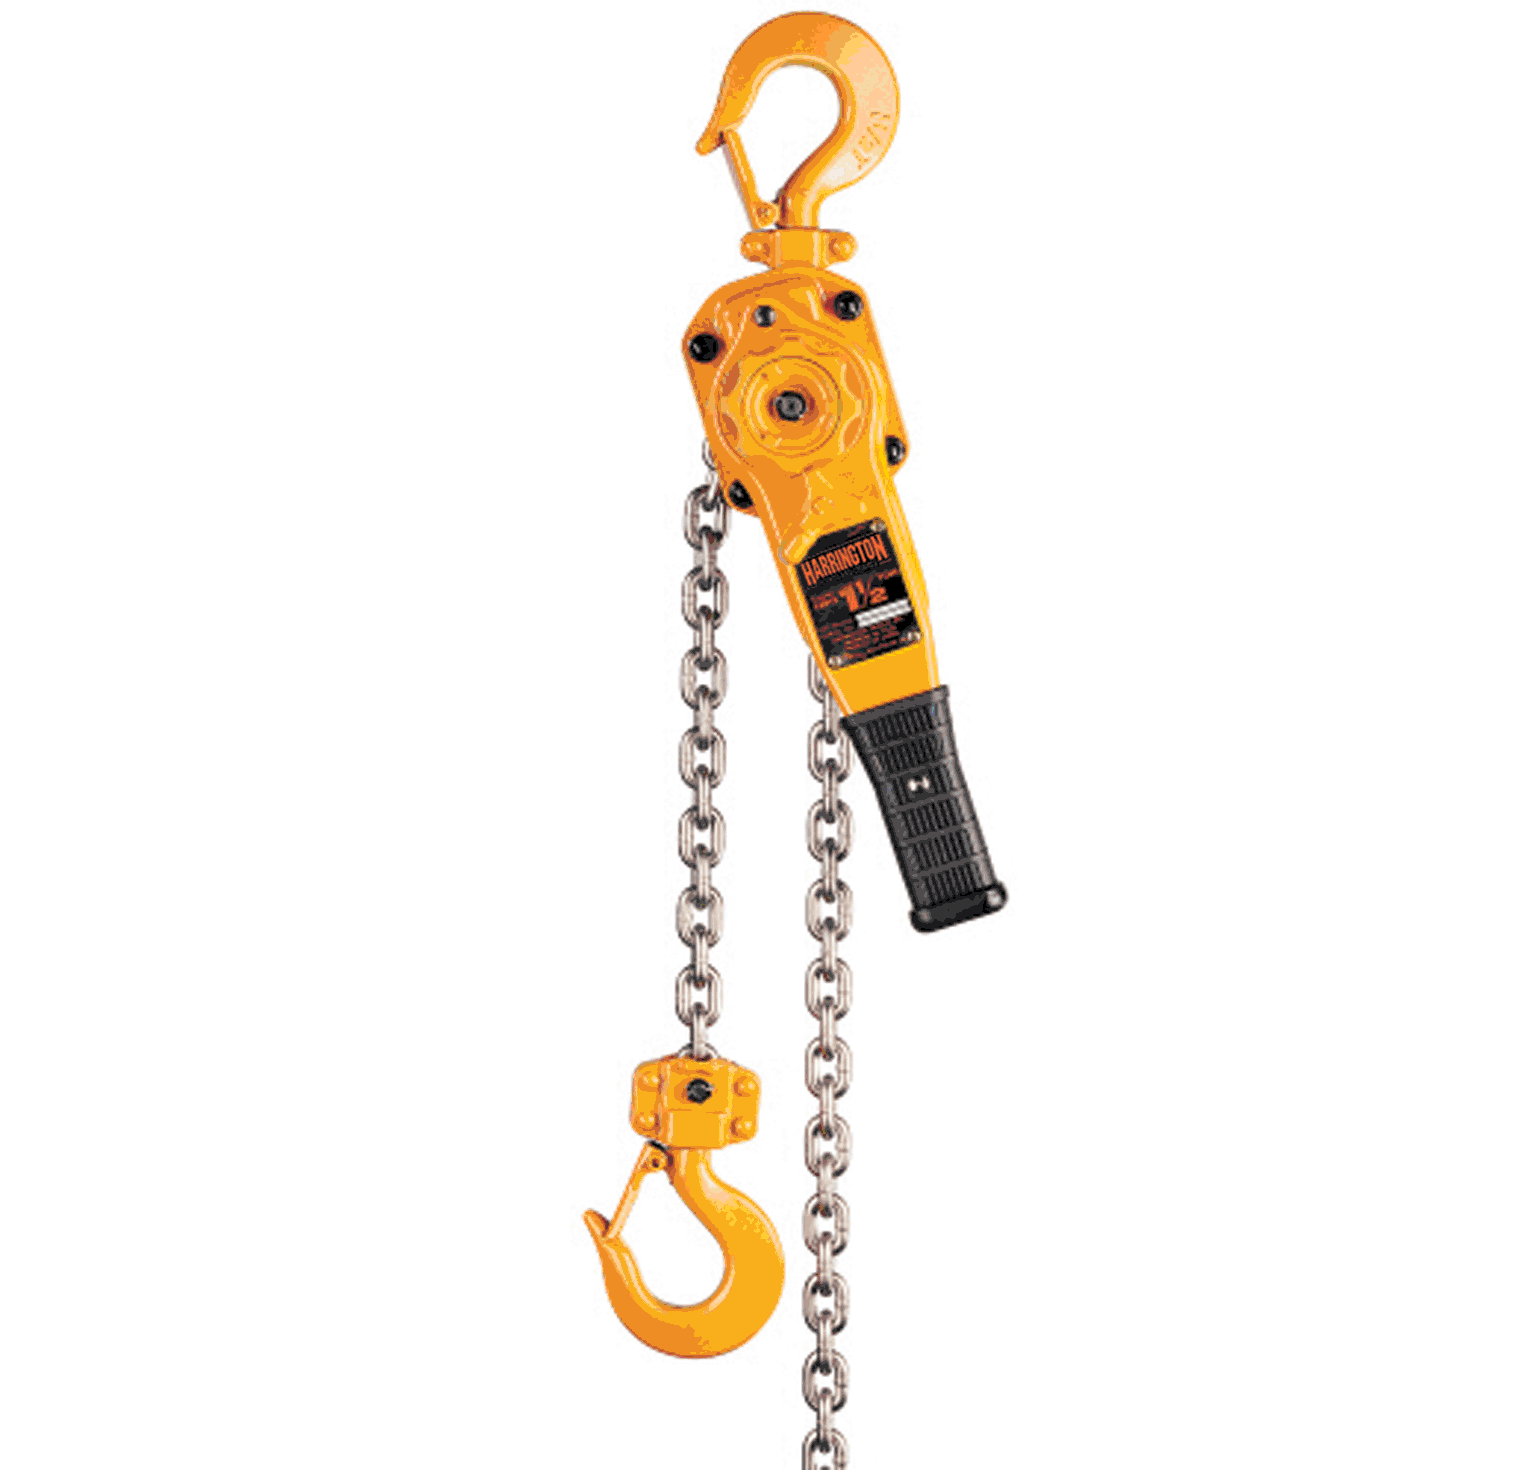 Model LHHL Heavy Duty Lever Hoist